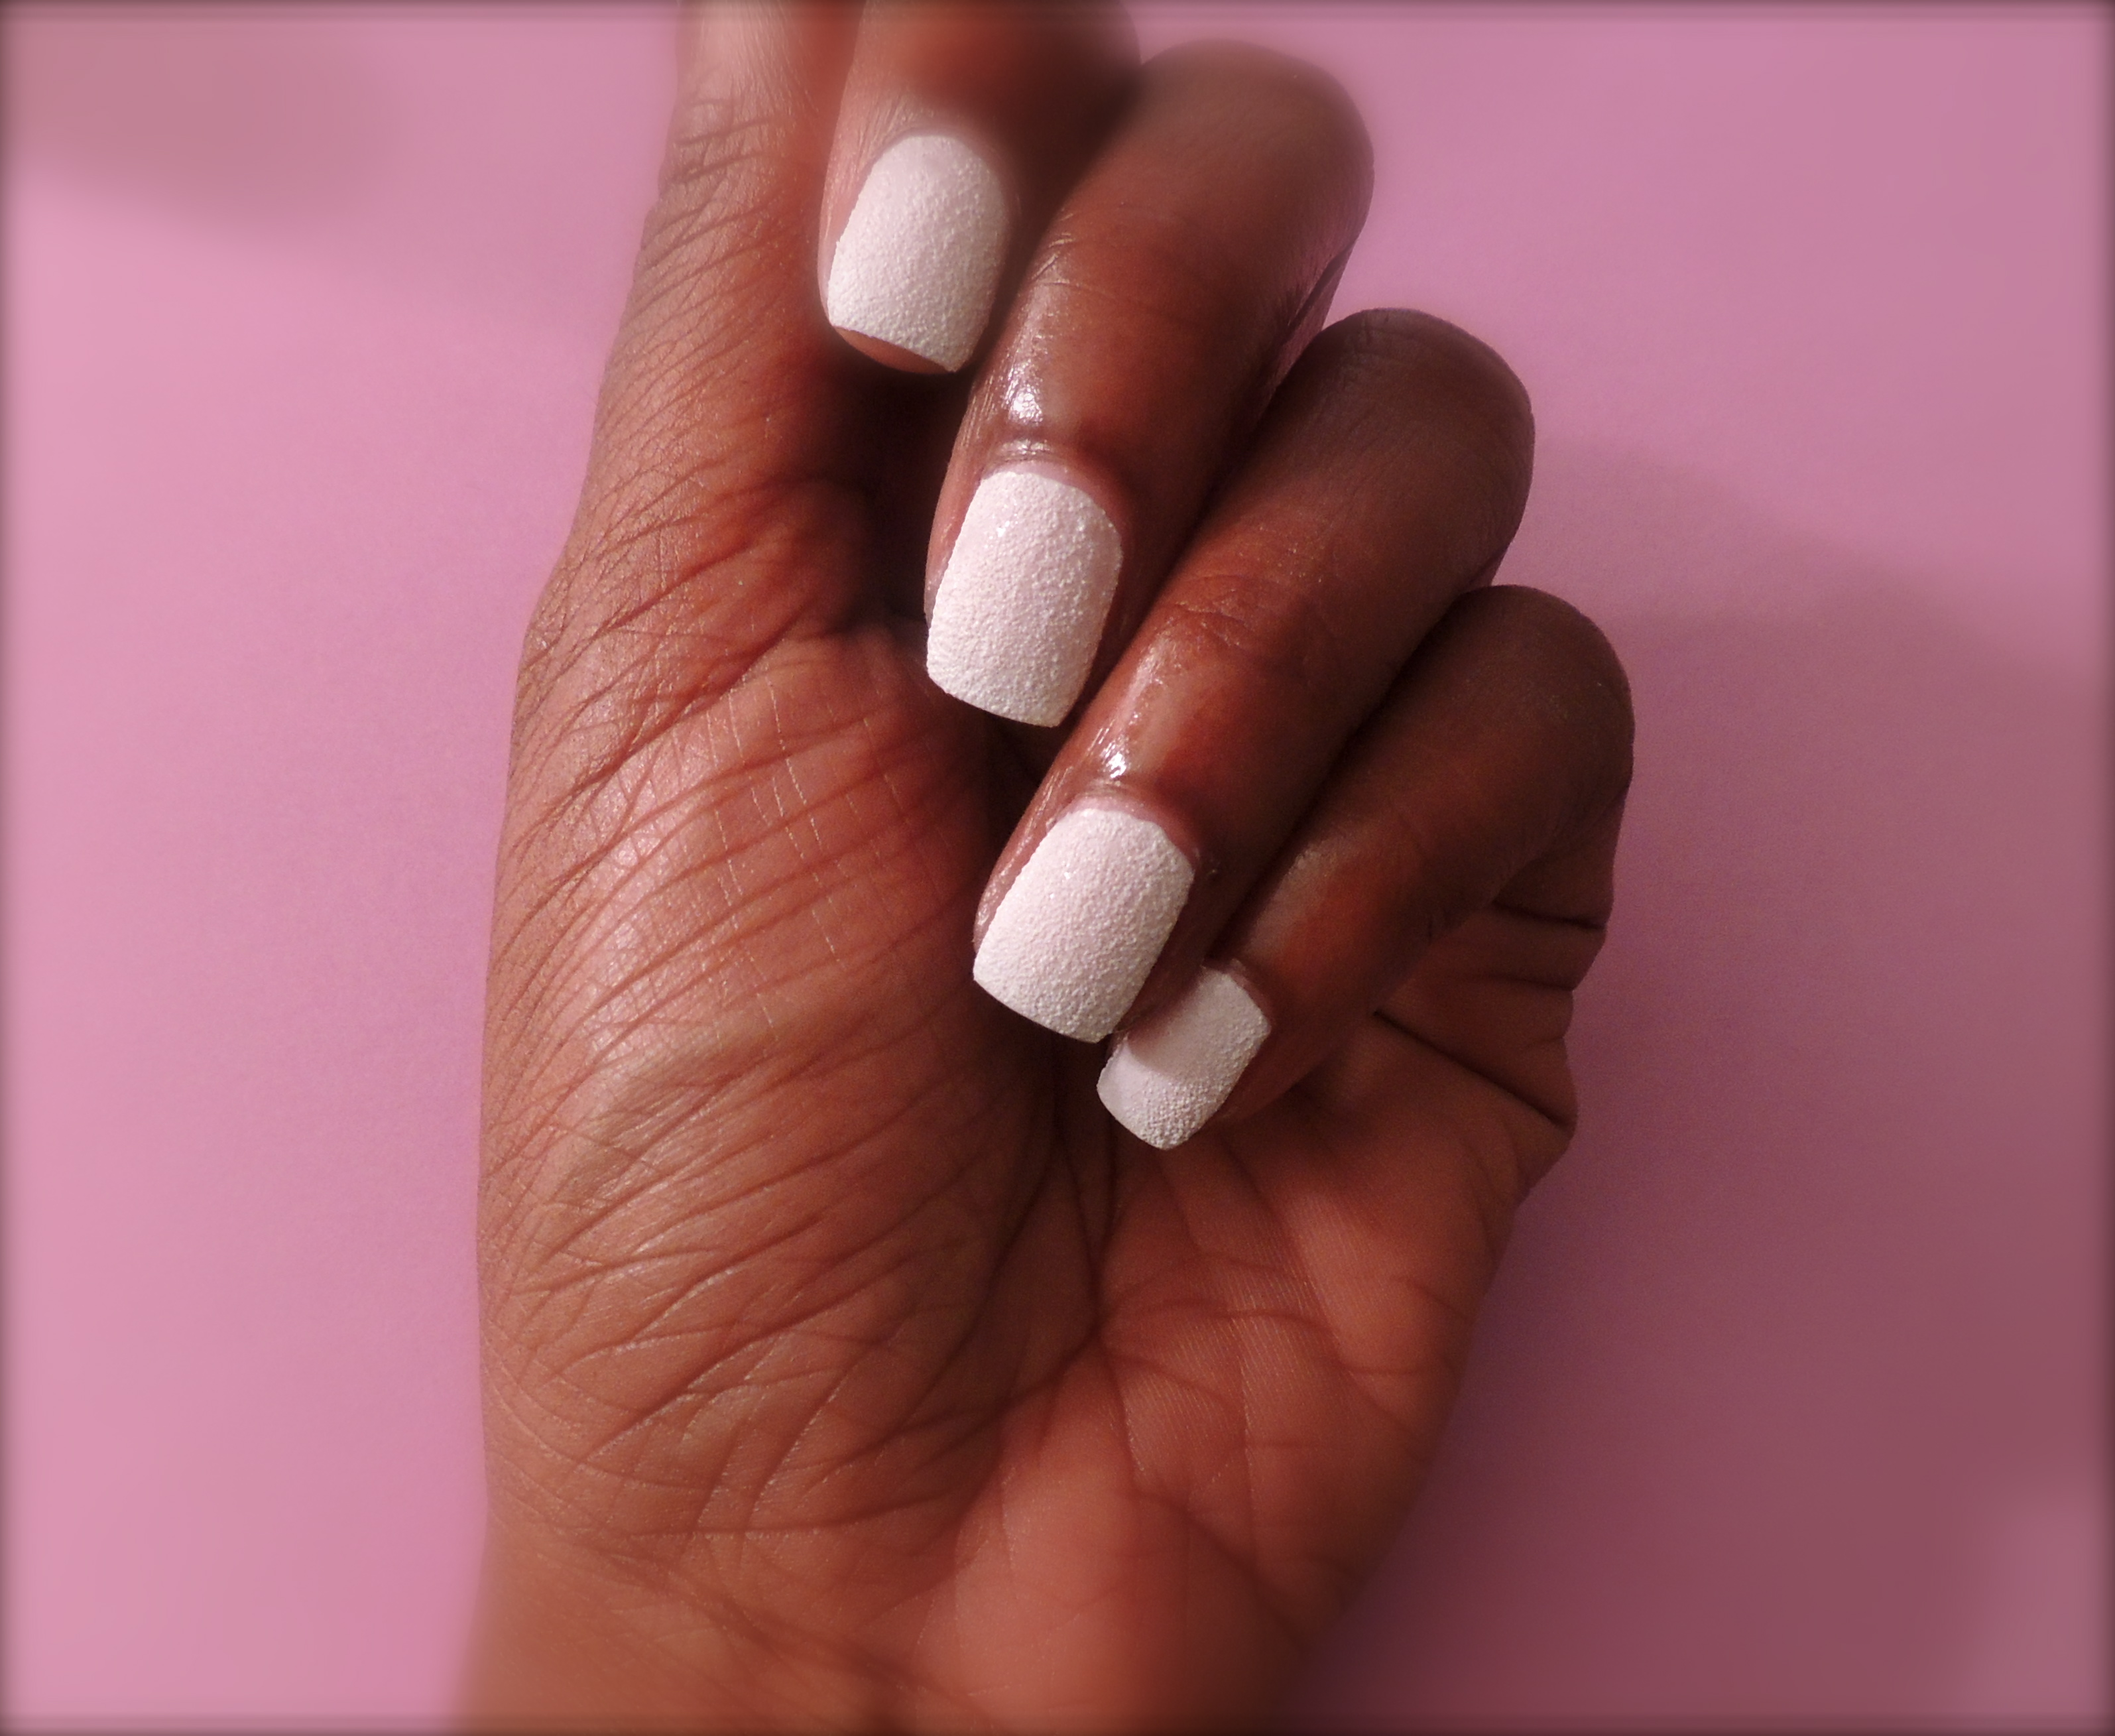 Sometimes White Nail Polish Can Look Very Harsh On Darker Complexions DSCN0419